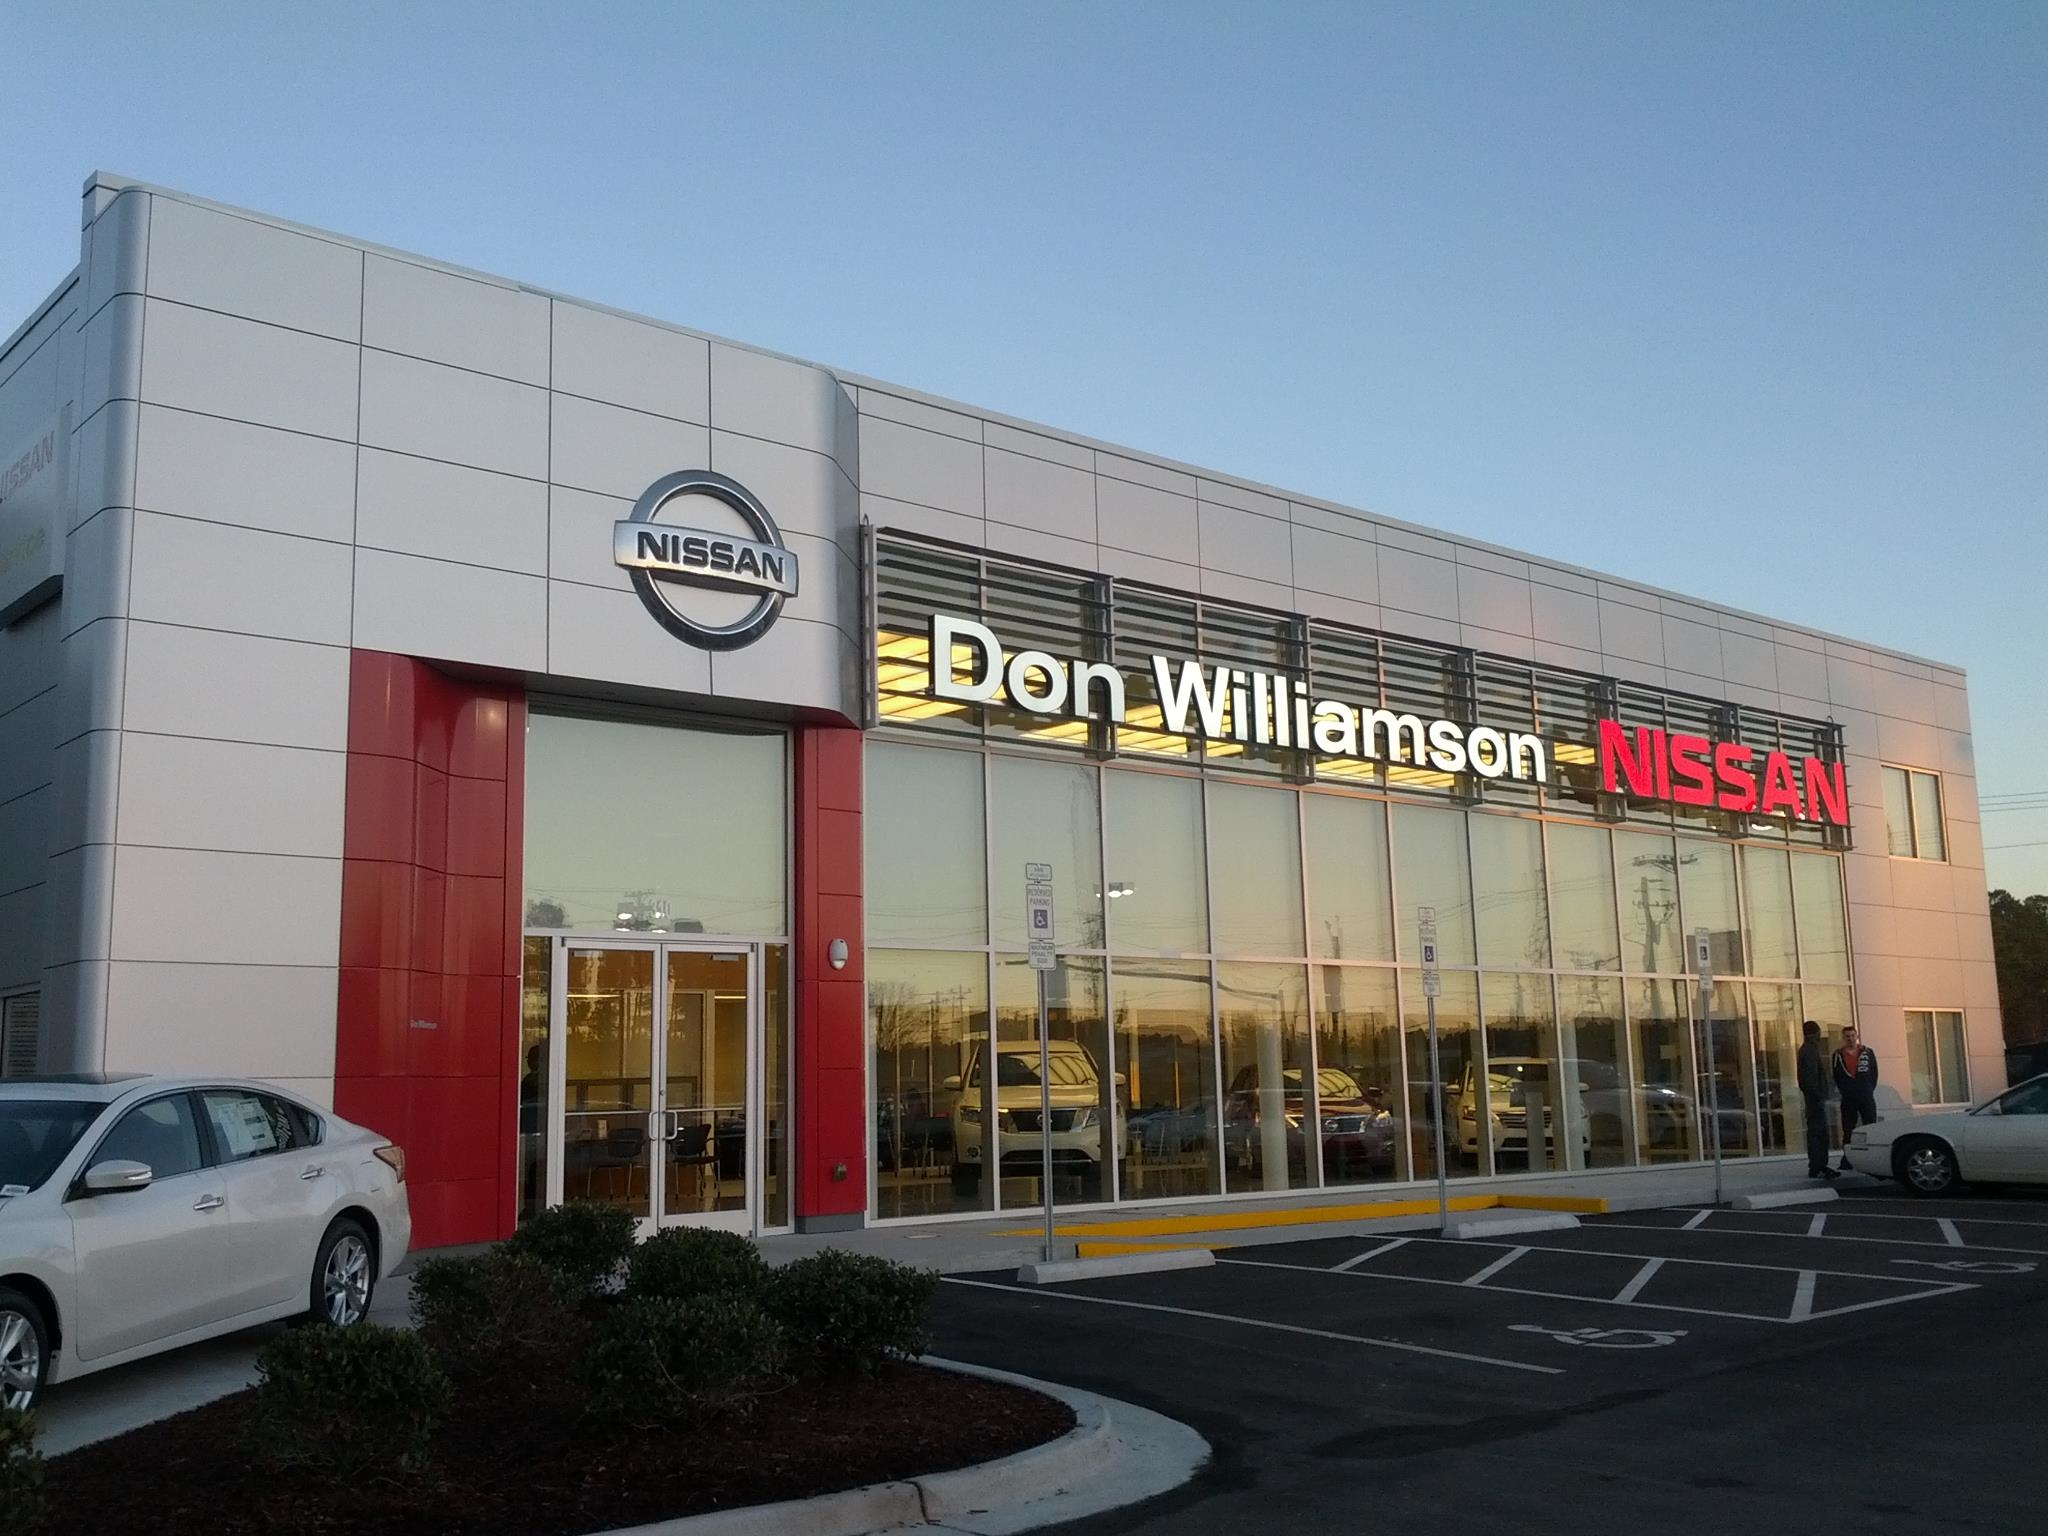 Amazing Don Williamson Nissan 310 Western Blvd Jacksonville, NC Auto Dealers    MapQuest